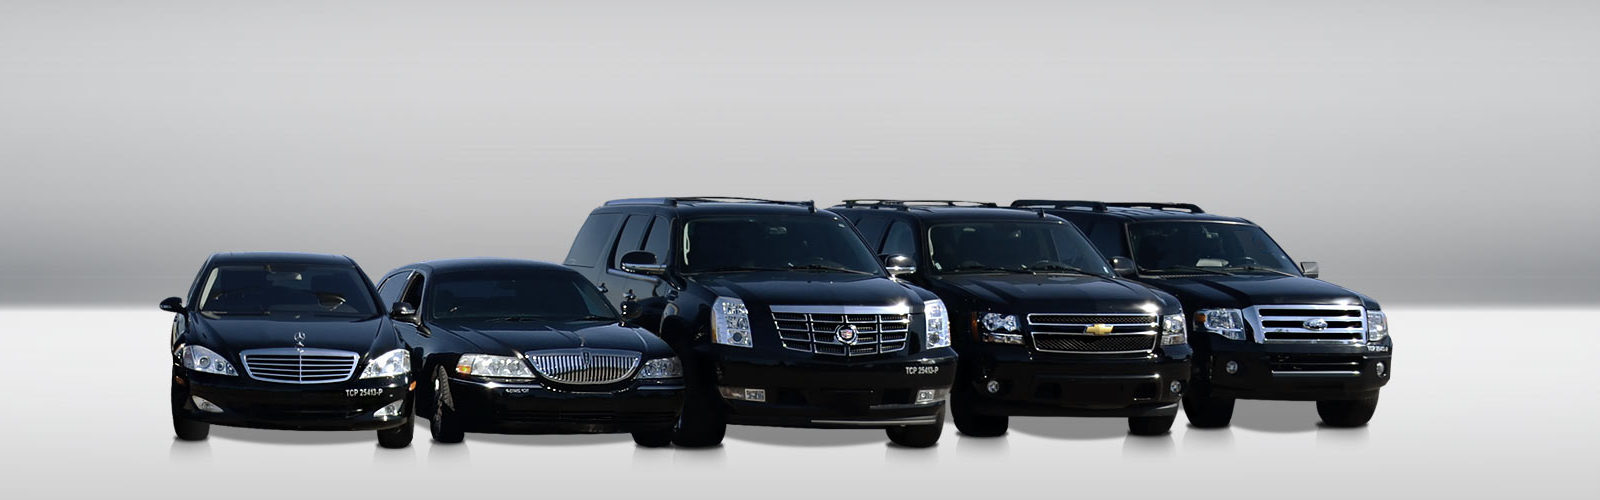 Success Limousines Transportation Fleet Cars